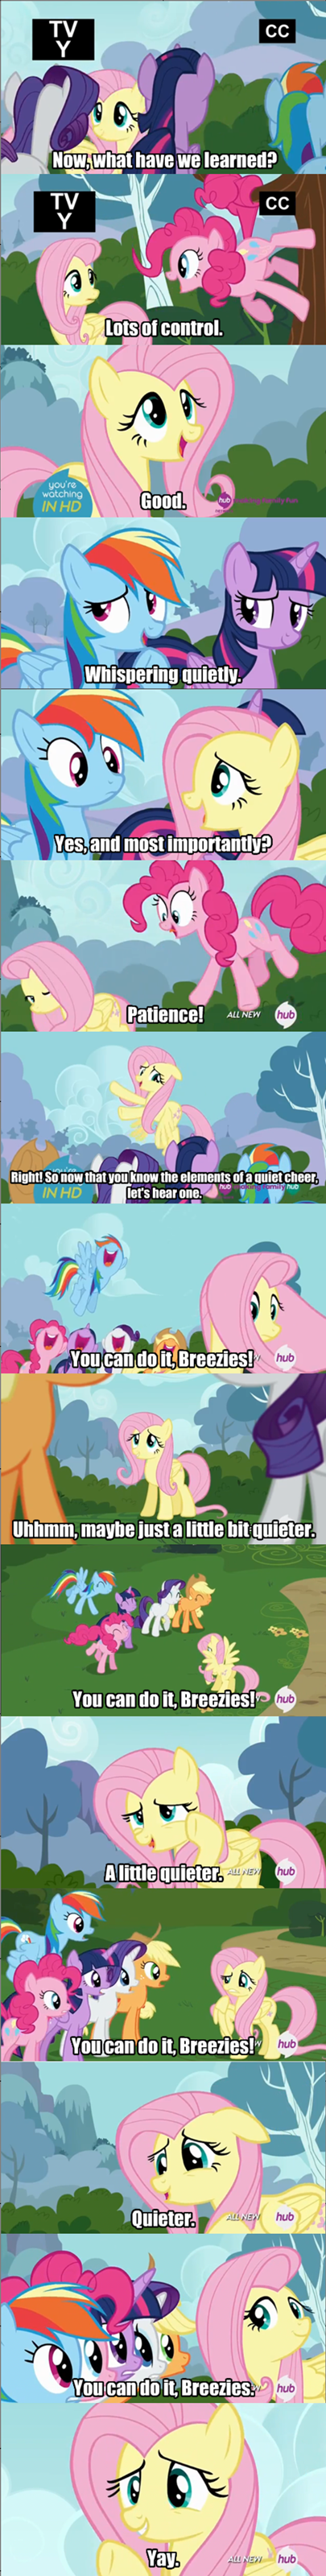 cheers fluttershy yay - 8089696768